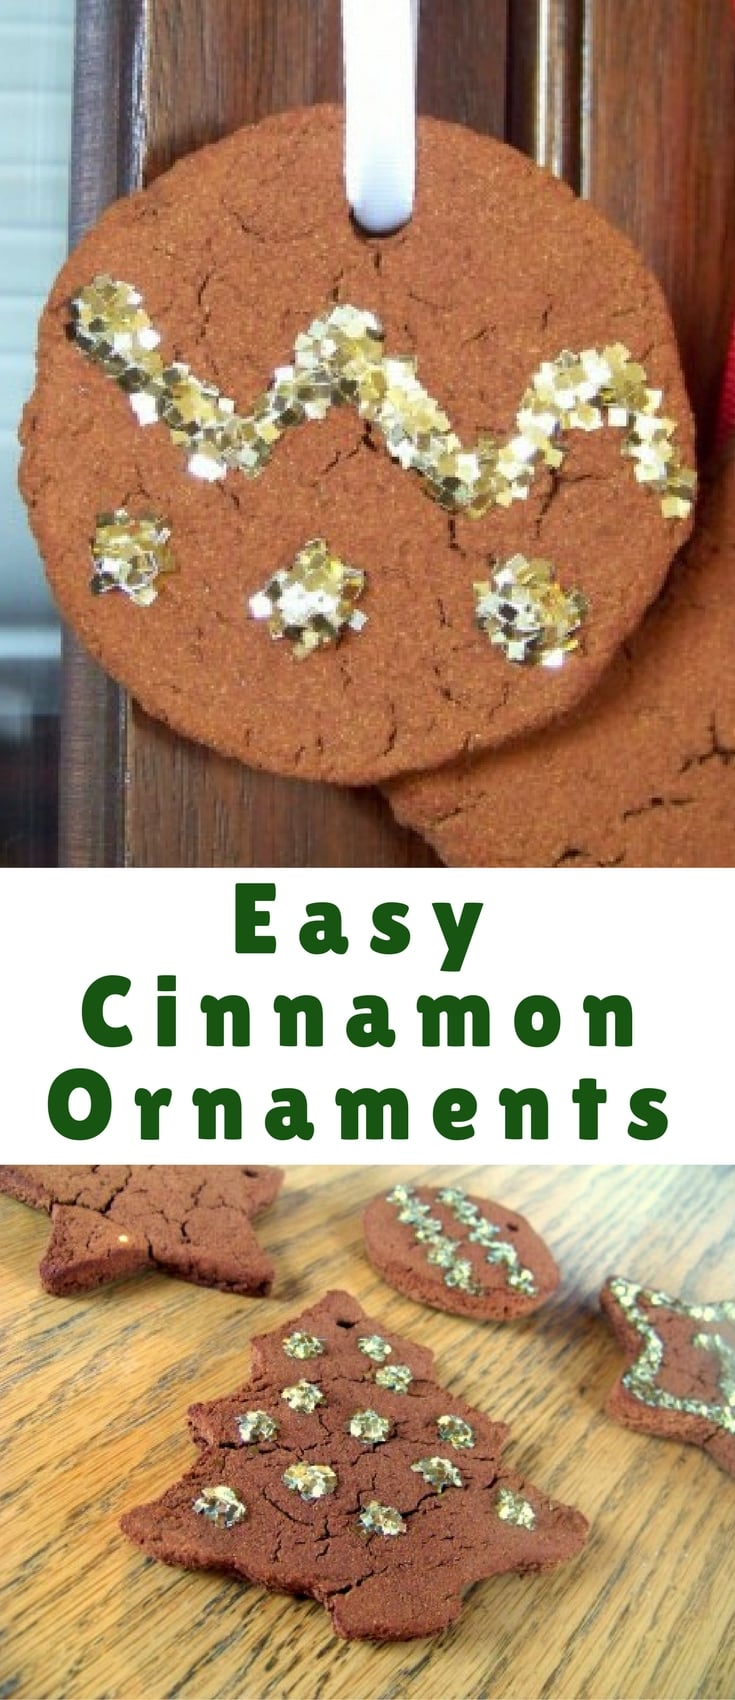 Cinnamon applesauce ornaments are a simple, fun project to make with your family this Christmas. They only require two ingredients, and they make your house smell amazing!